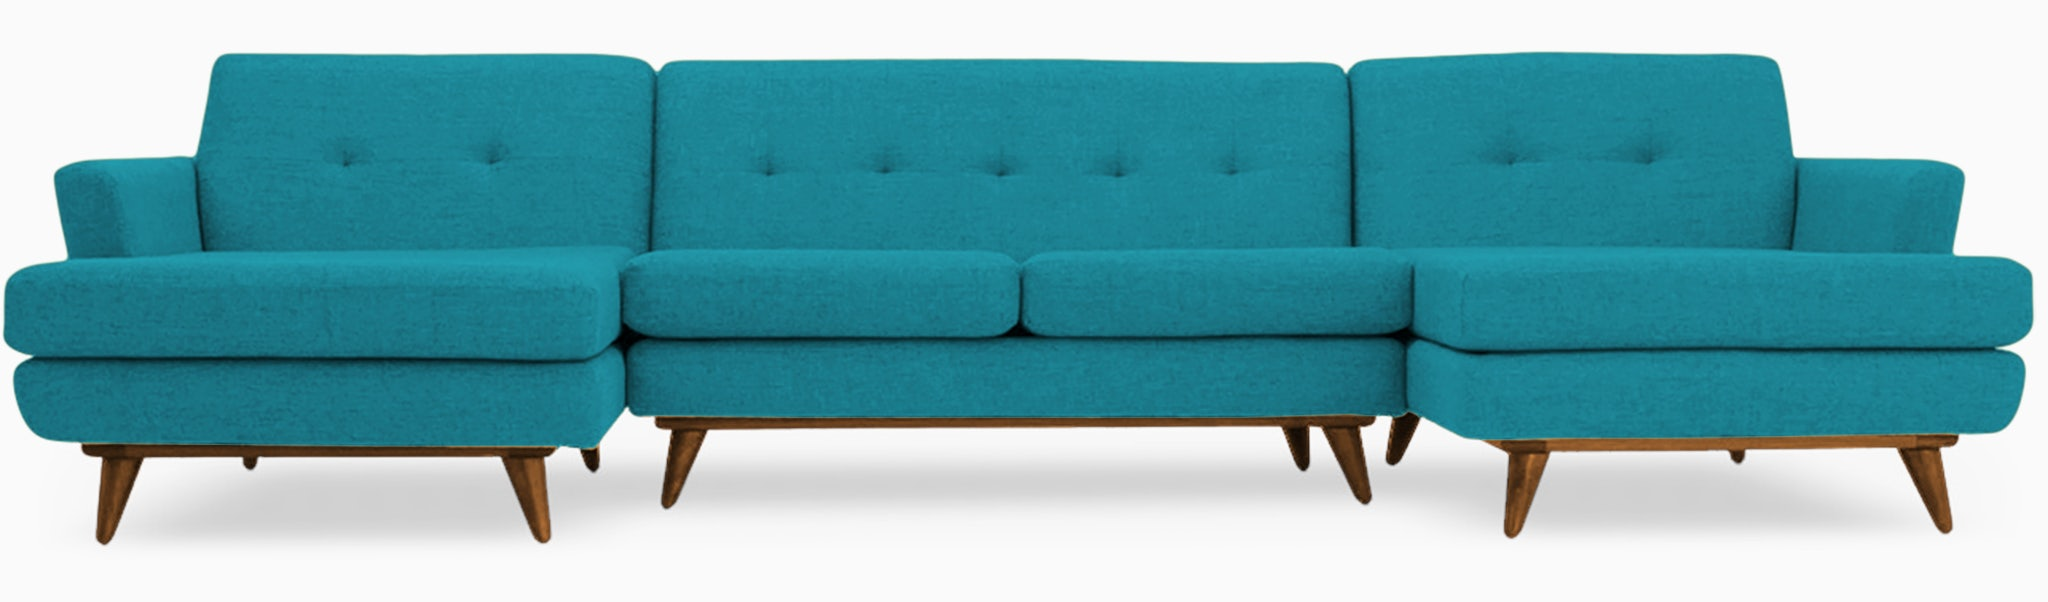 hughes chaise sectional %283 piece%29 vibe aquatic